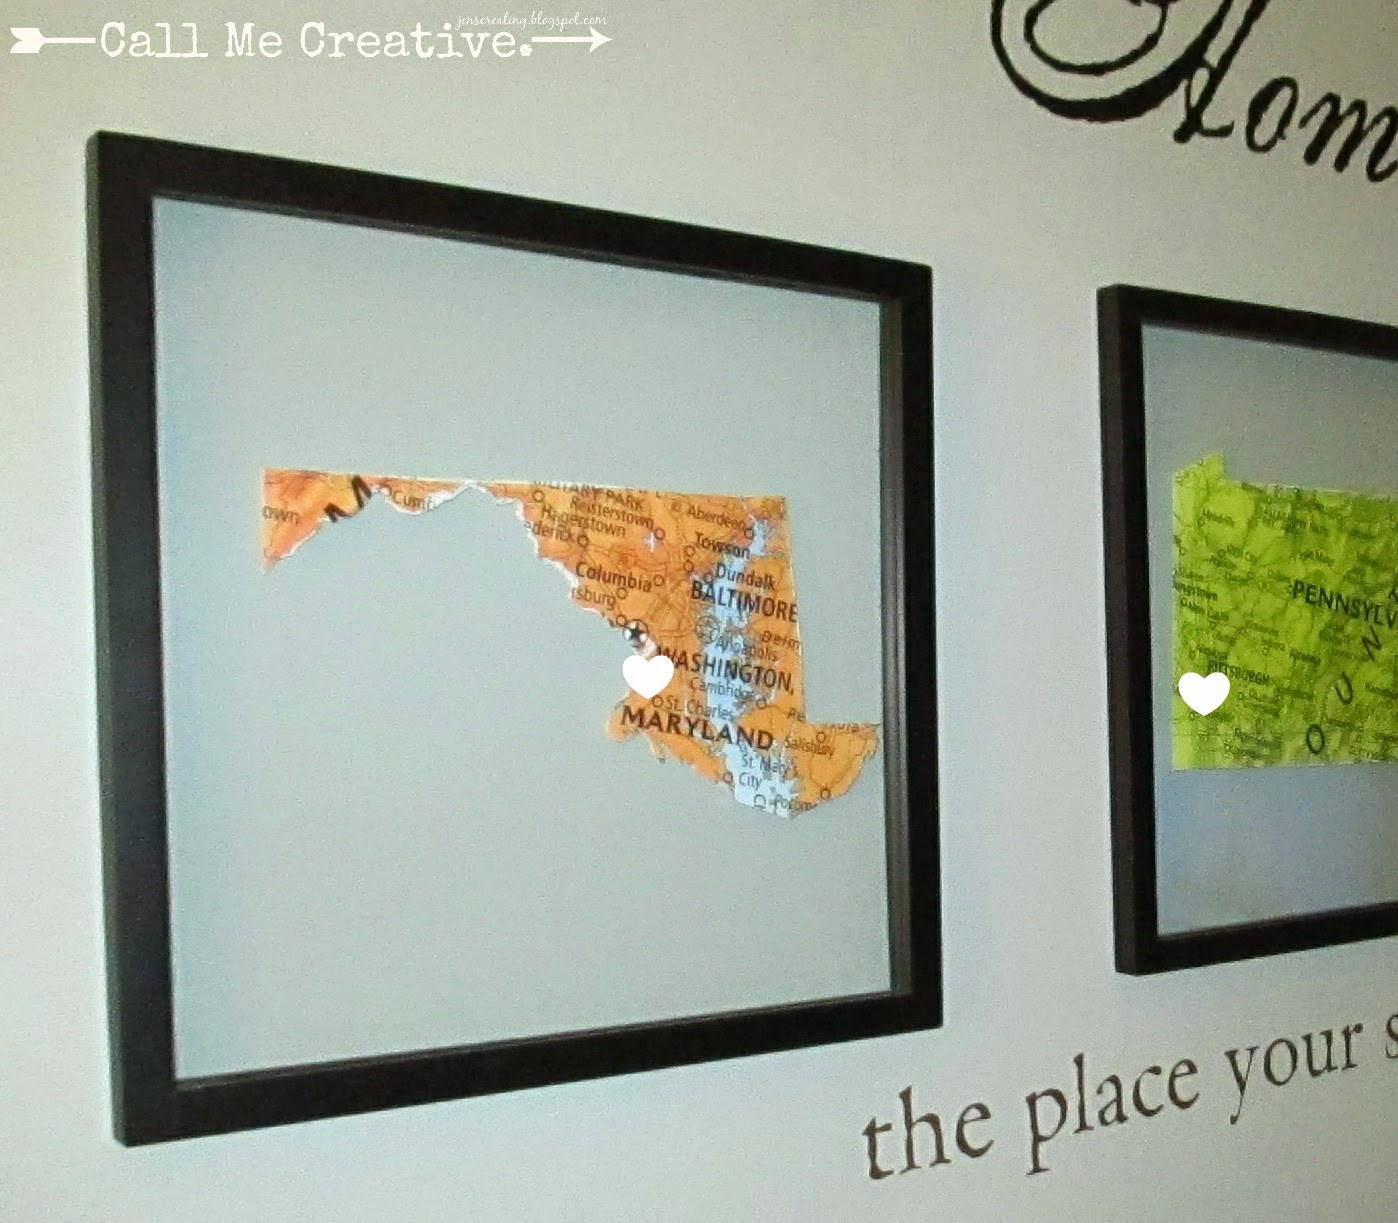 i used three floating wall picture frames from michael s because i wanted to frame three pictures maryland pennsylvania and new jersey